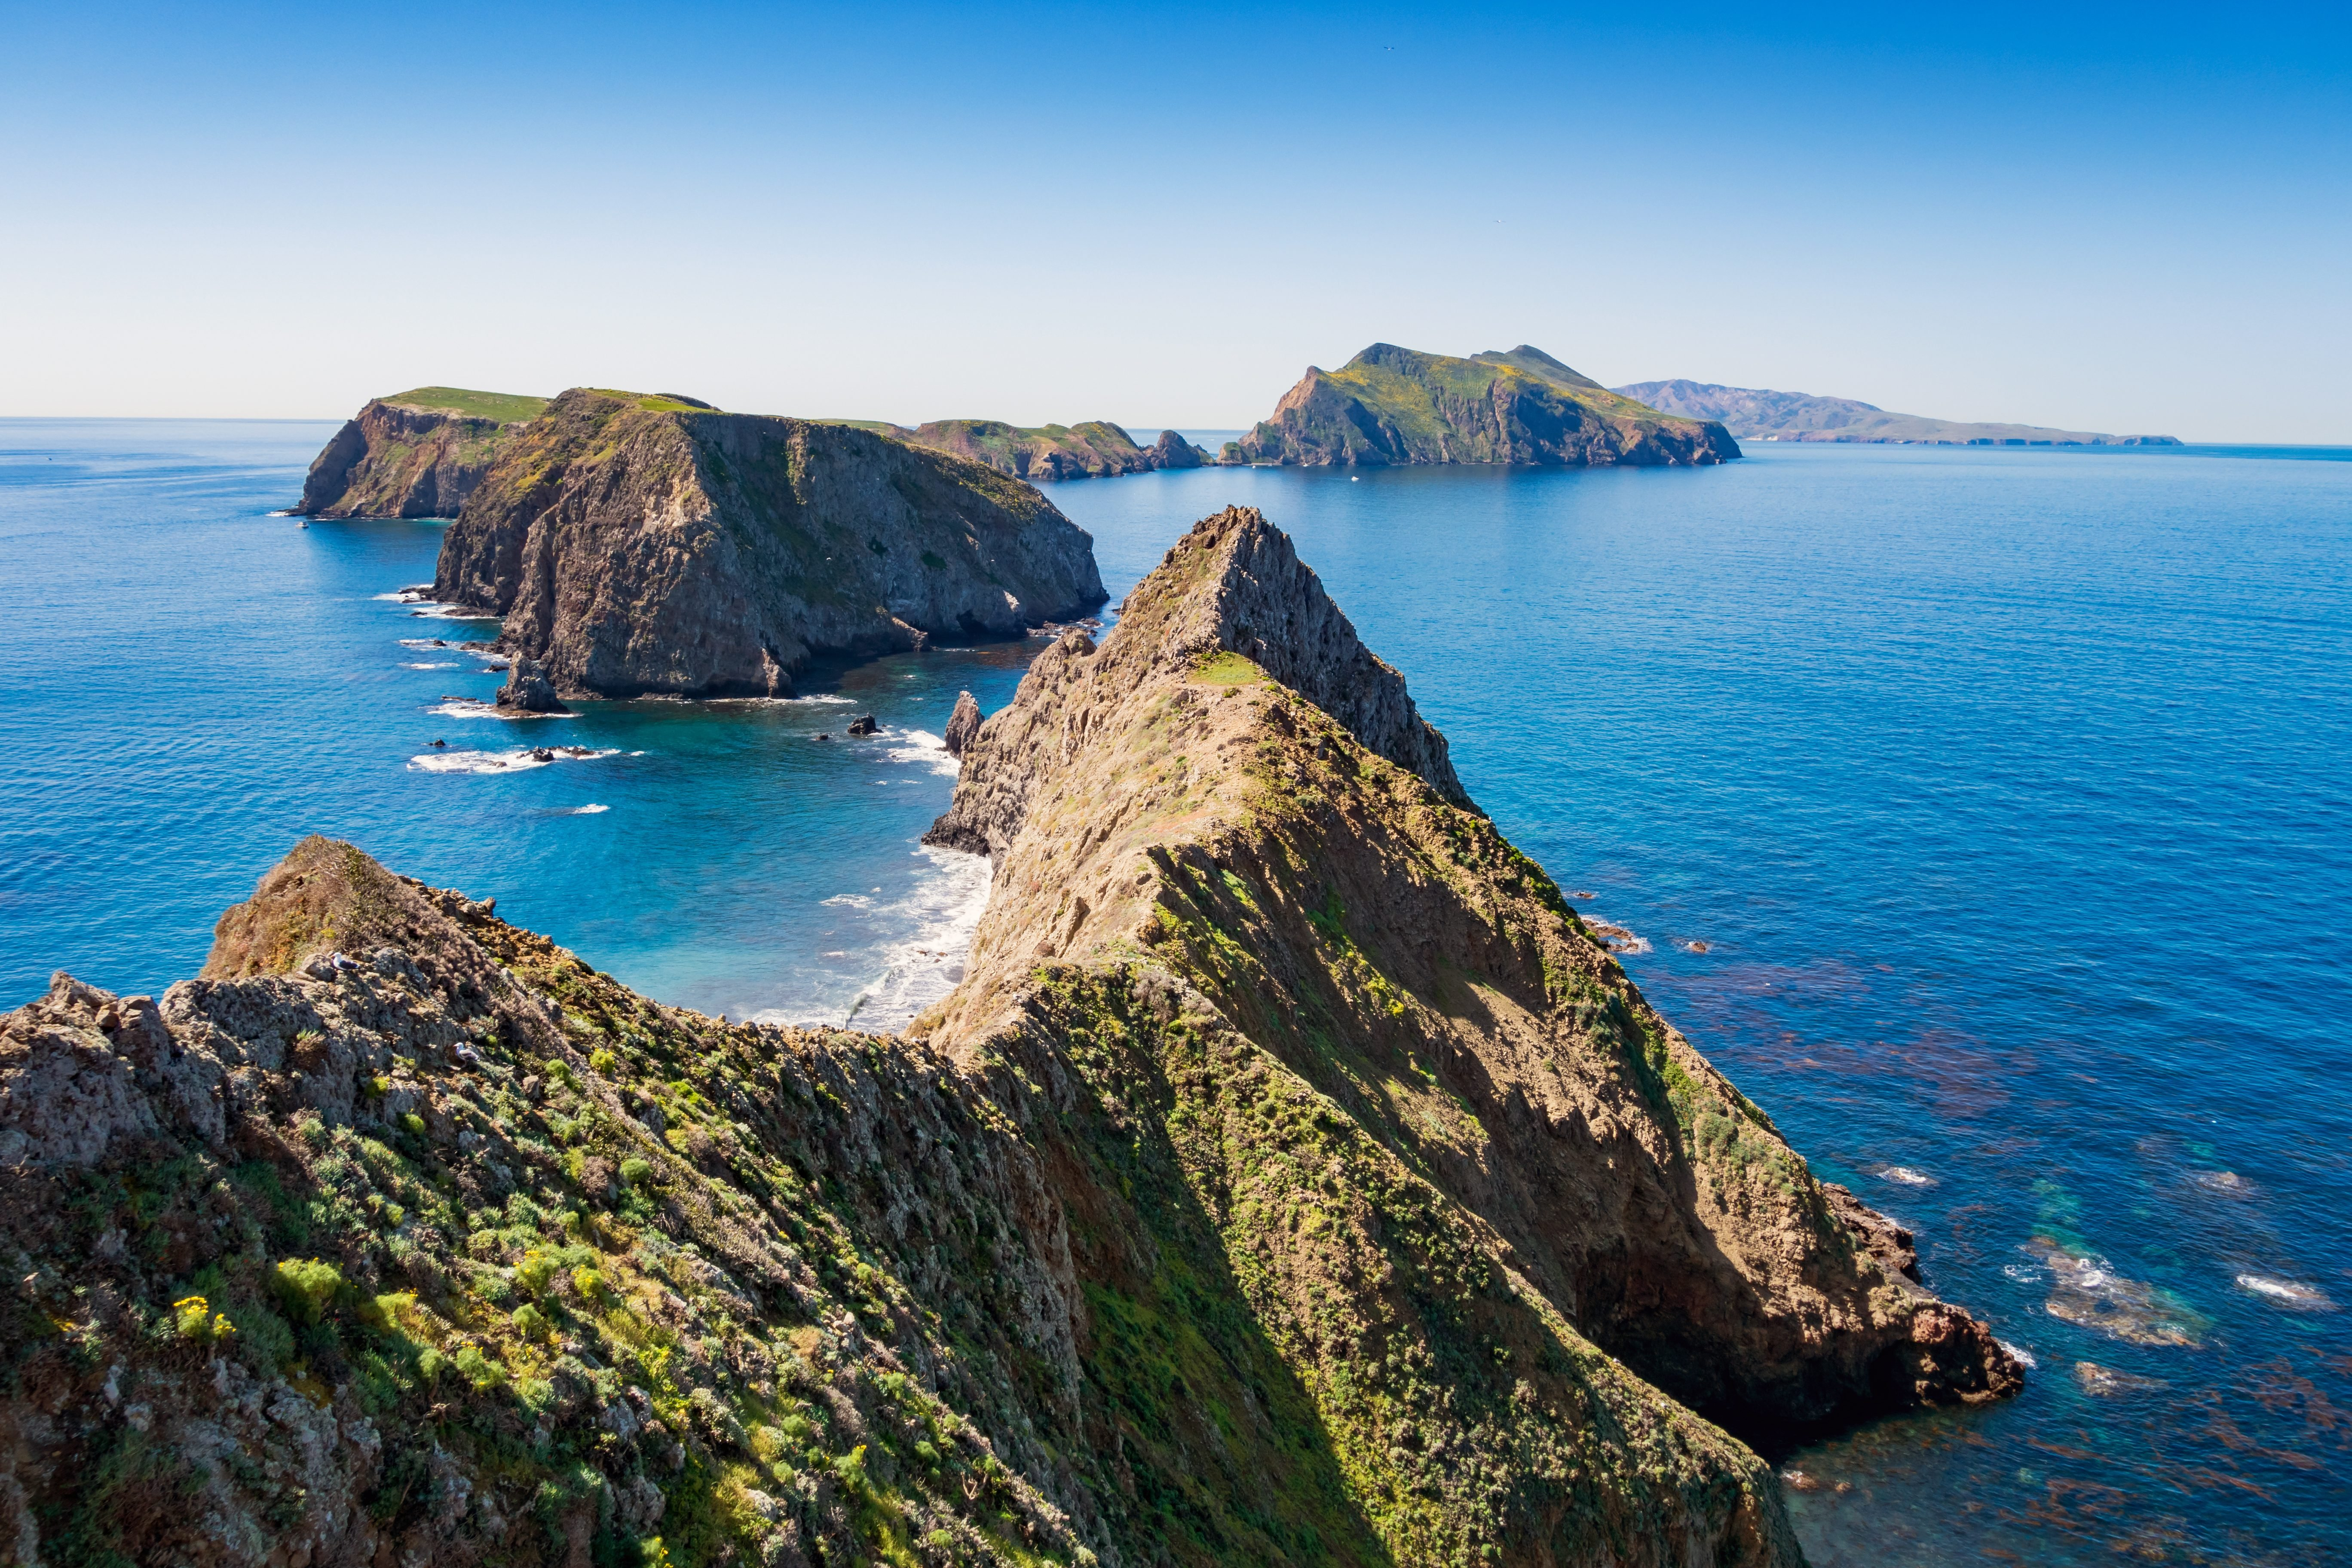 Inspiration Point view on Anacapa Island in Channel Islands National Park California